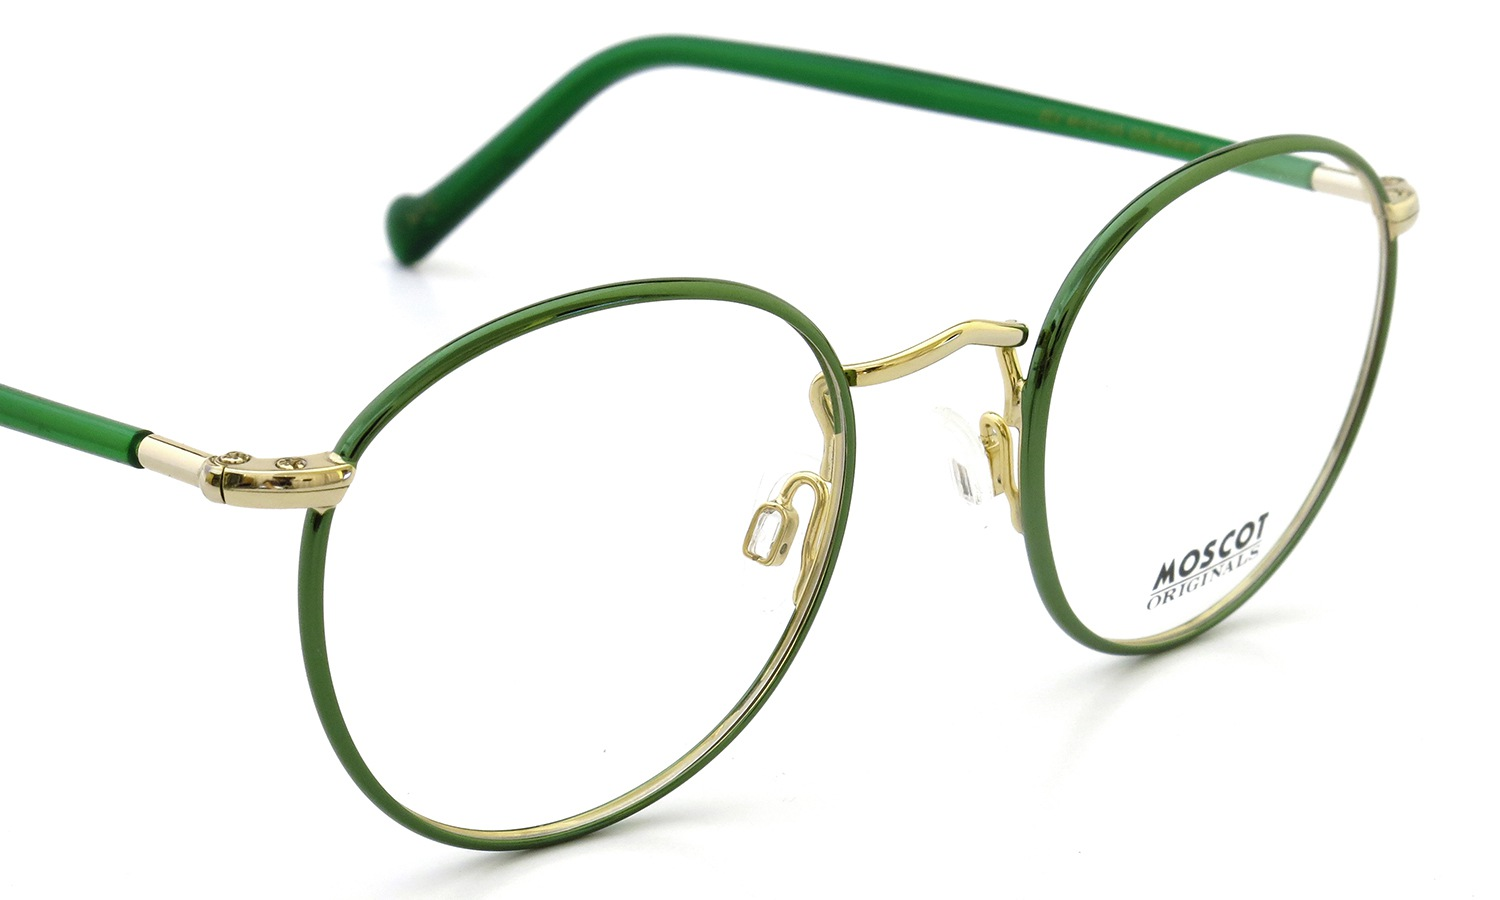 MOSCOT メガネ ZEV 46size Col.Emerald/Gold